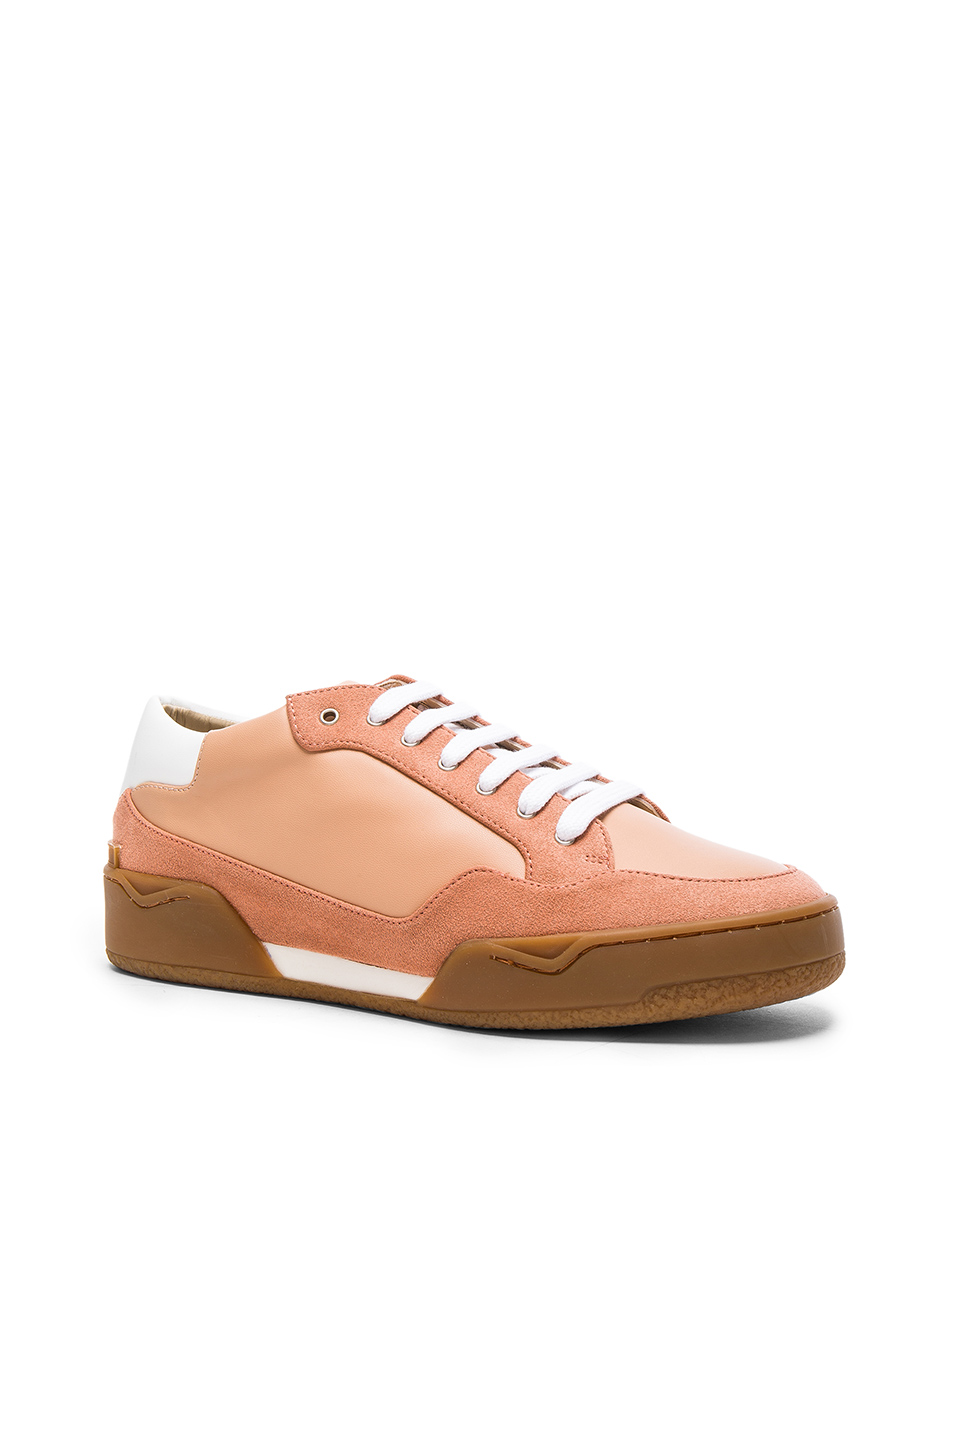 Stella McCartneySneakers in Pink,Neutrals